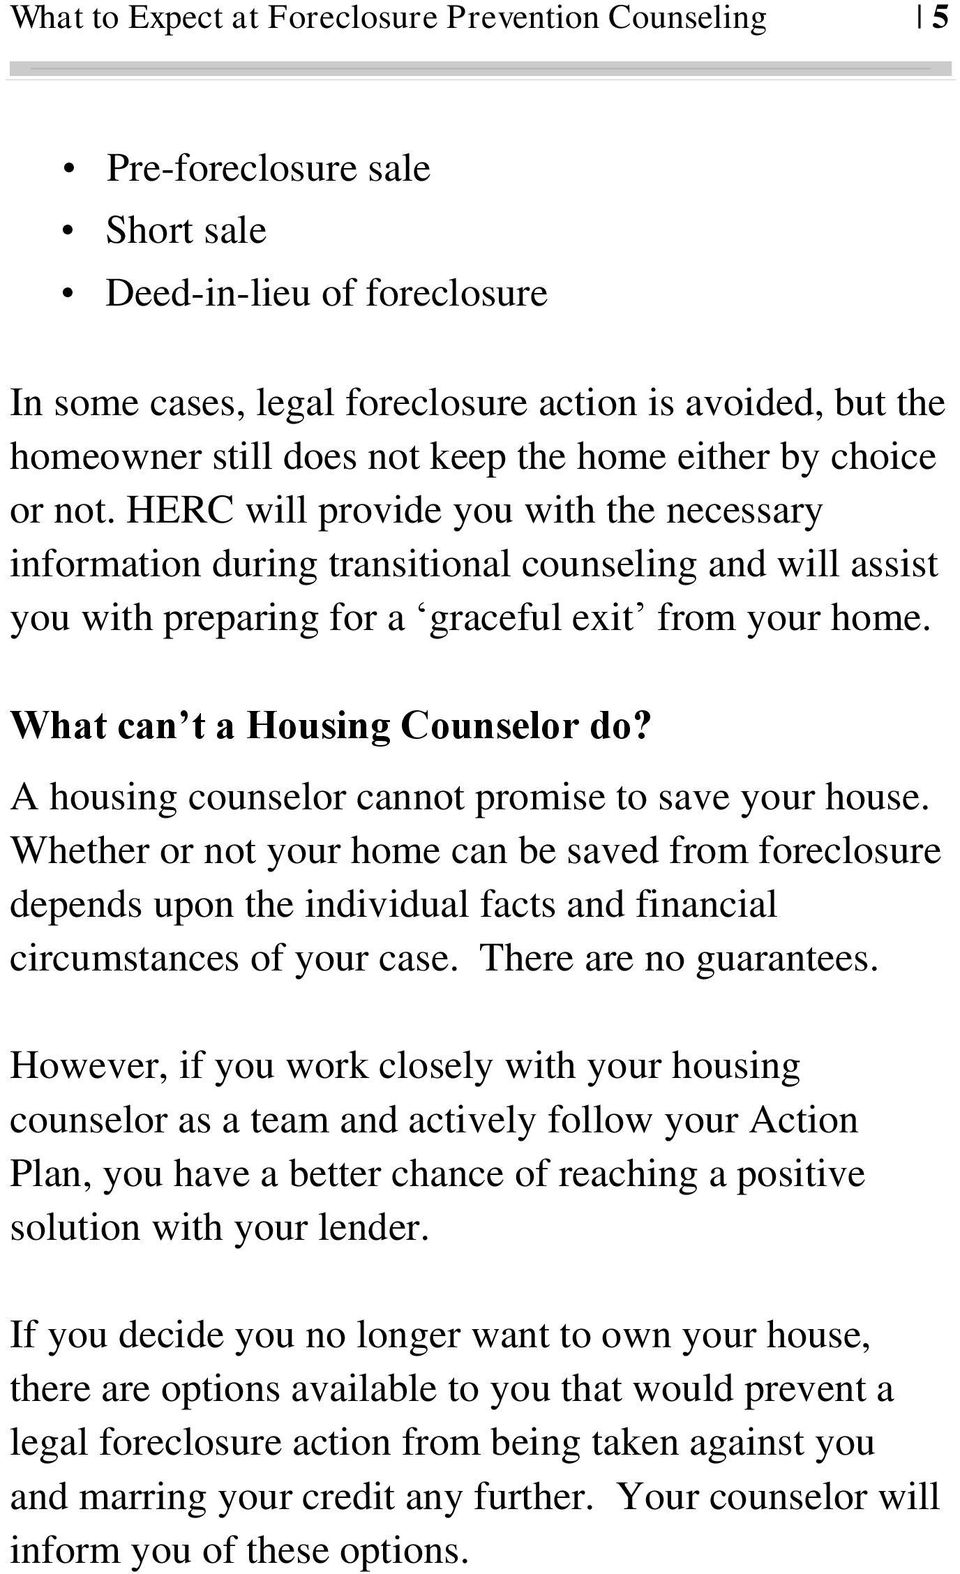 What can t a Housing Counselor do? A housing counselor cannot promise to save your house.